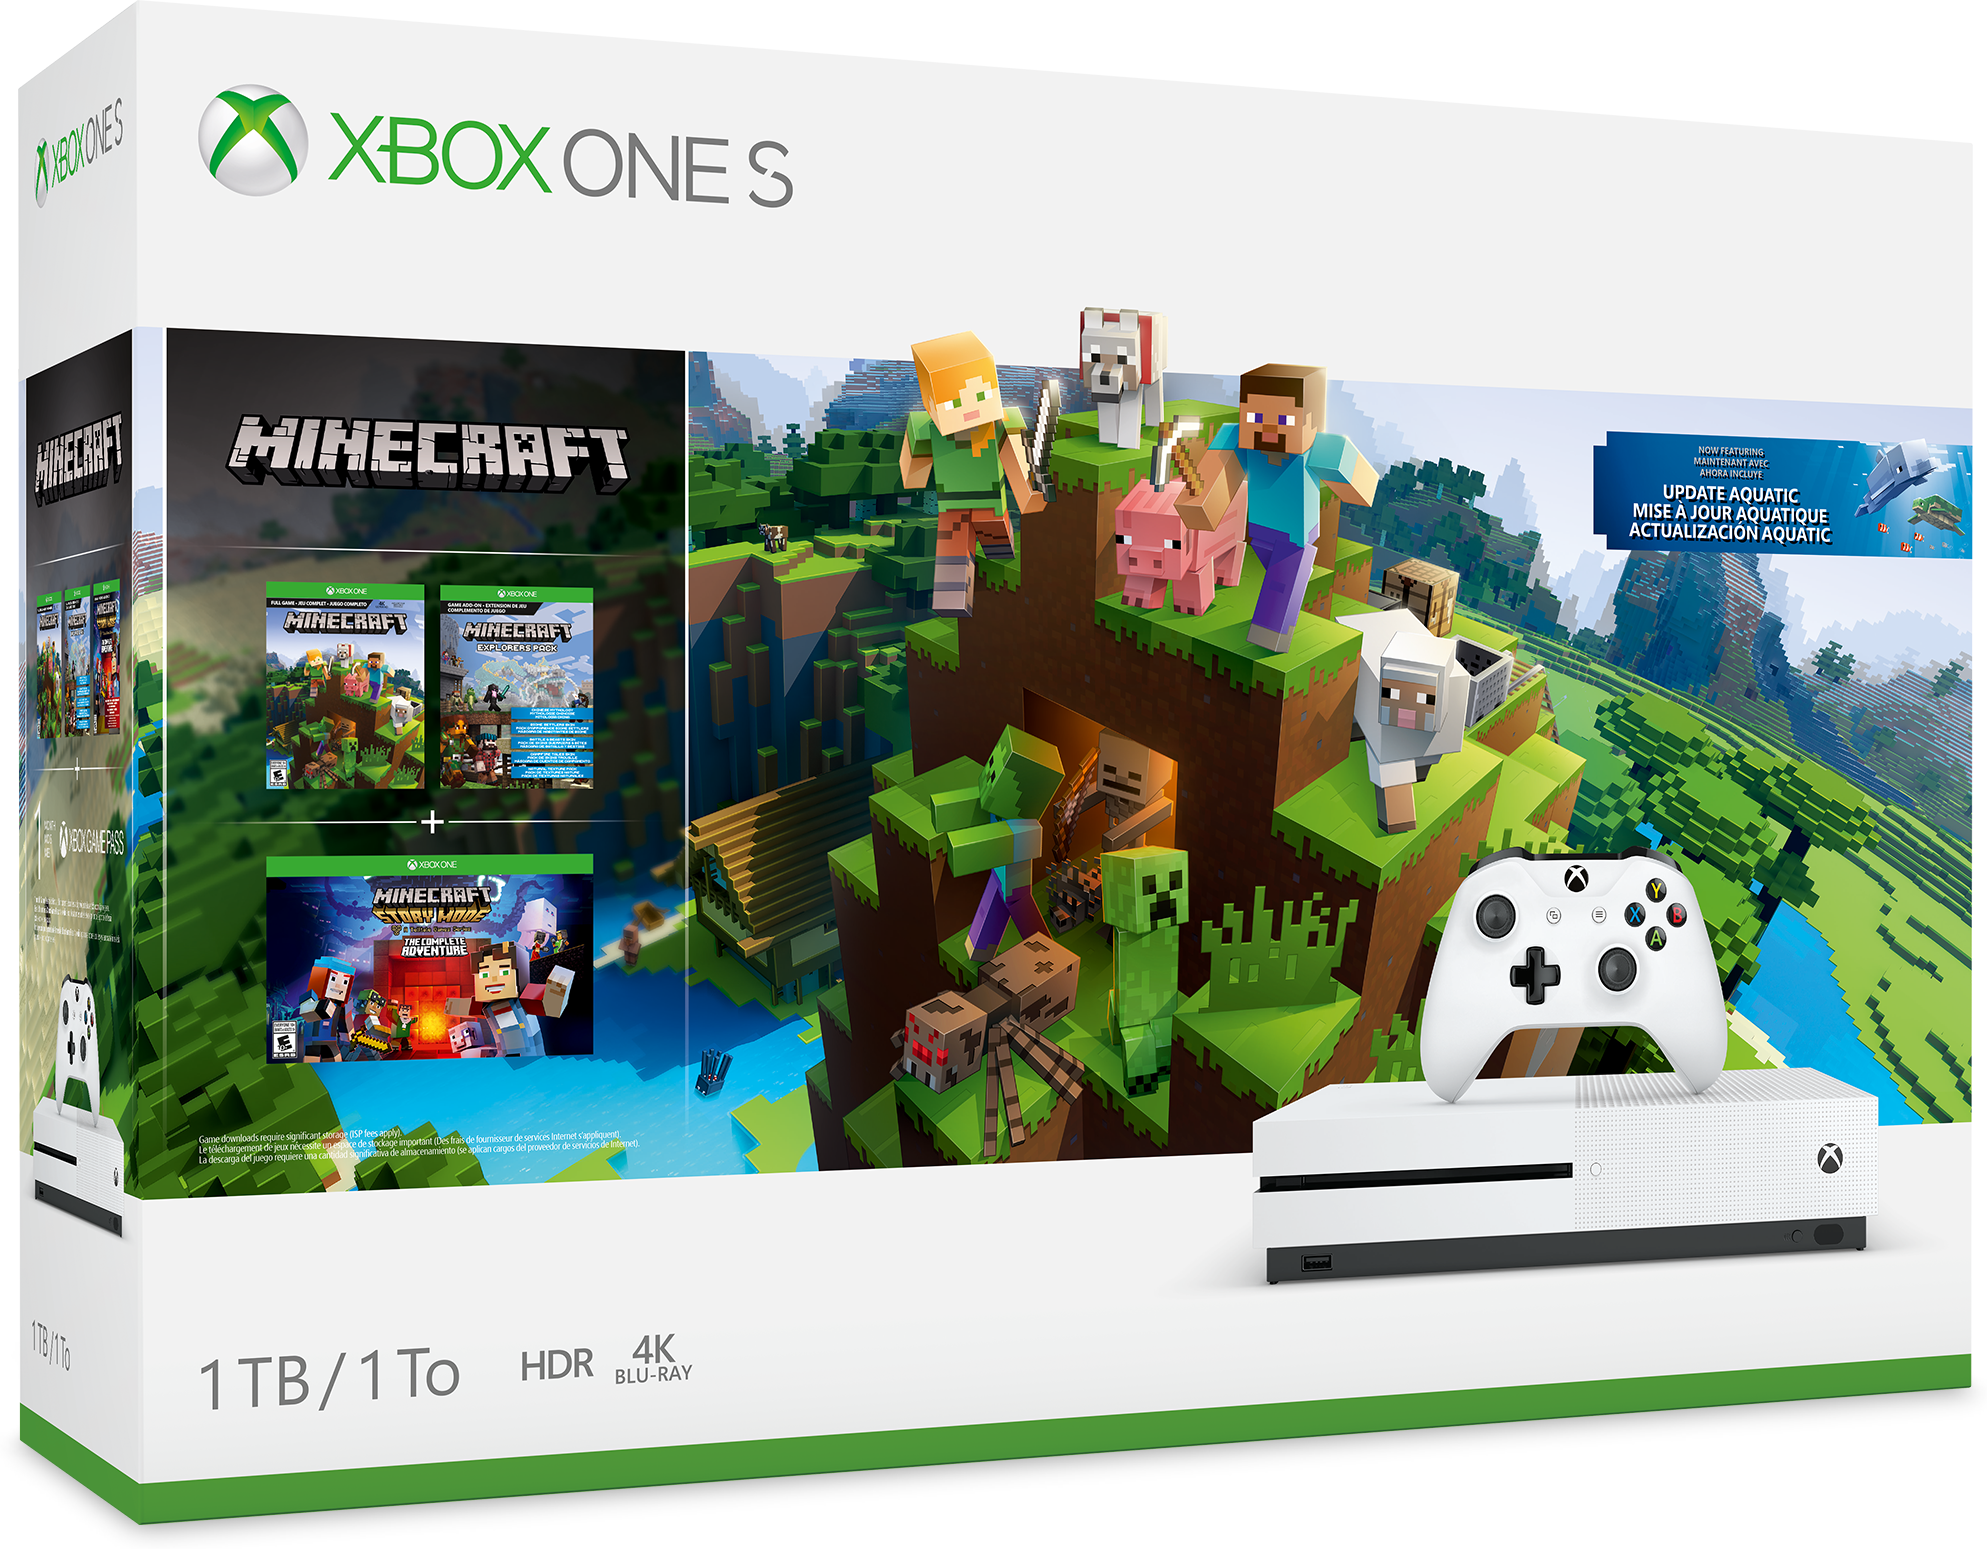 Minecraft-pakke for Xbox One S 1 TB